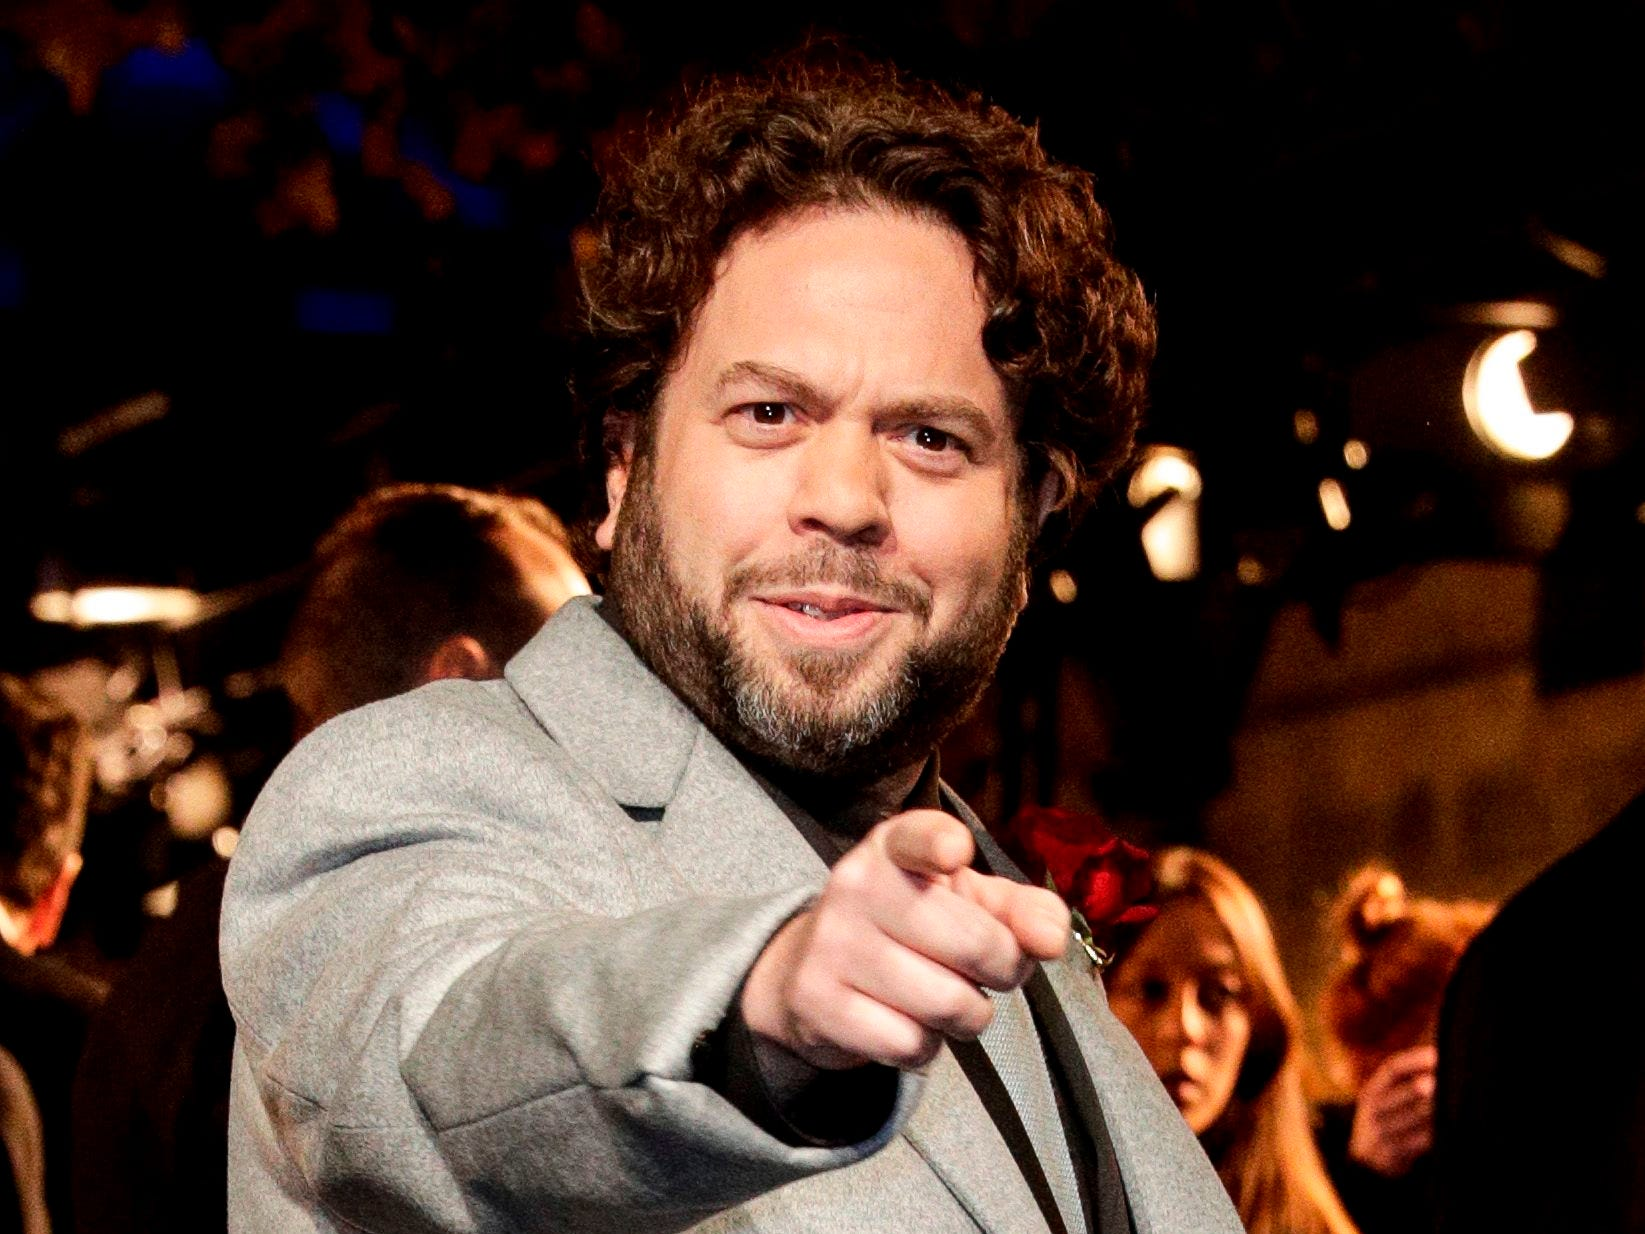 US actor Dan Fogler reacts for photographers as he arrives for the premier of the fantasy film 'Fantastic Beasts: The Crimes of Grindelwald' in Paris on November 8, 2018. (Photo by Geoffroy VAN DER HASSELT / AFP)GEOFFROY VAN DER HASSELT/AFP/Getty Images ORIG FILE ID: AFP_1AO8R3